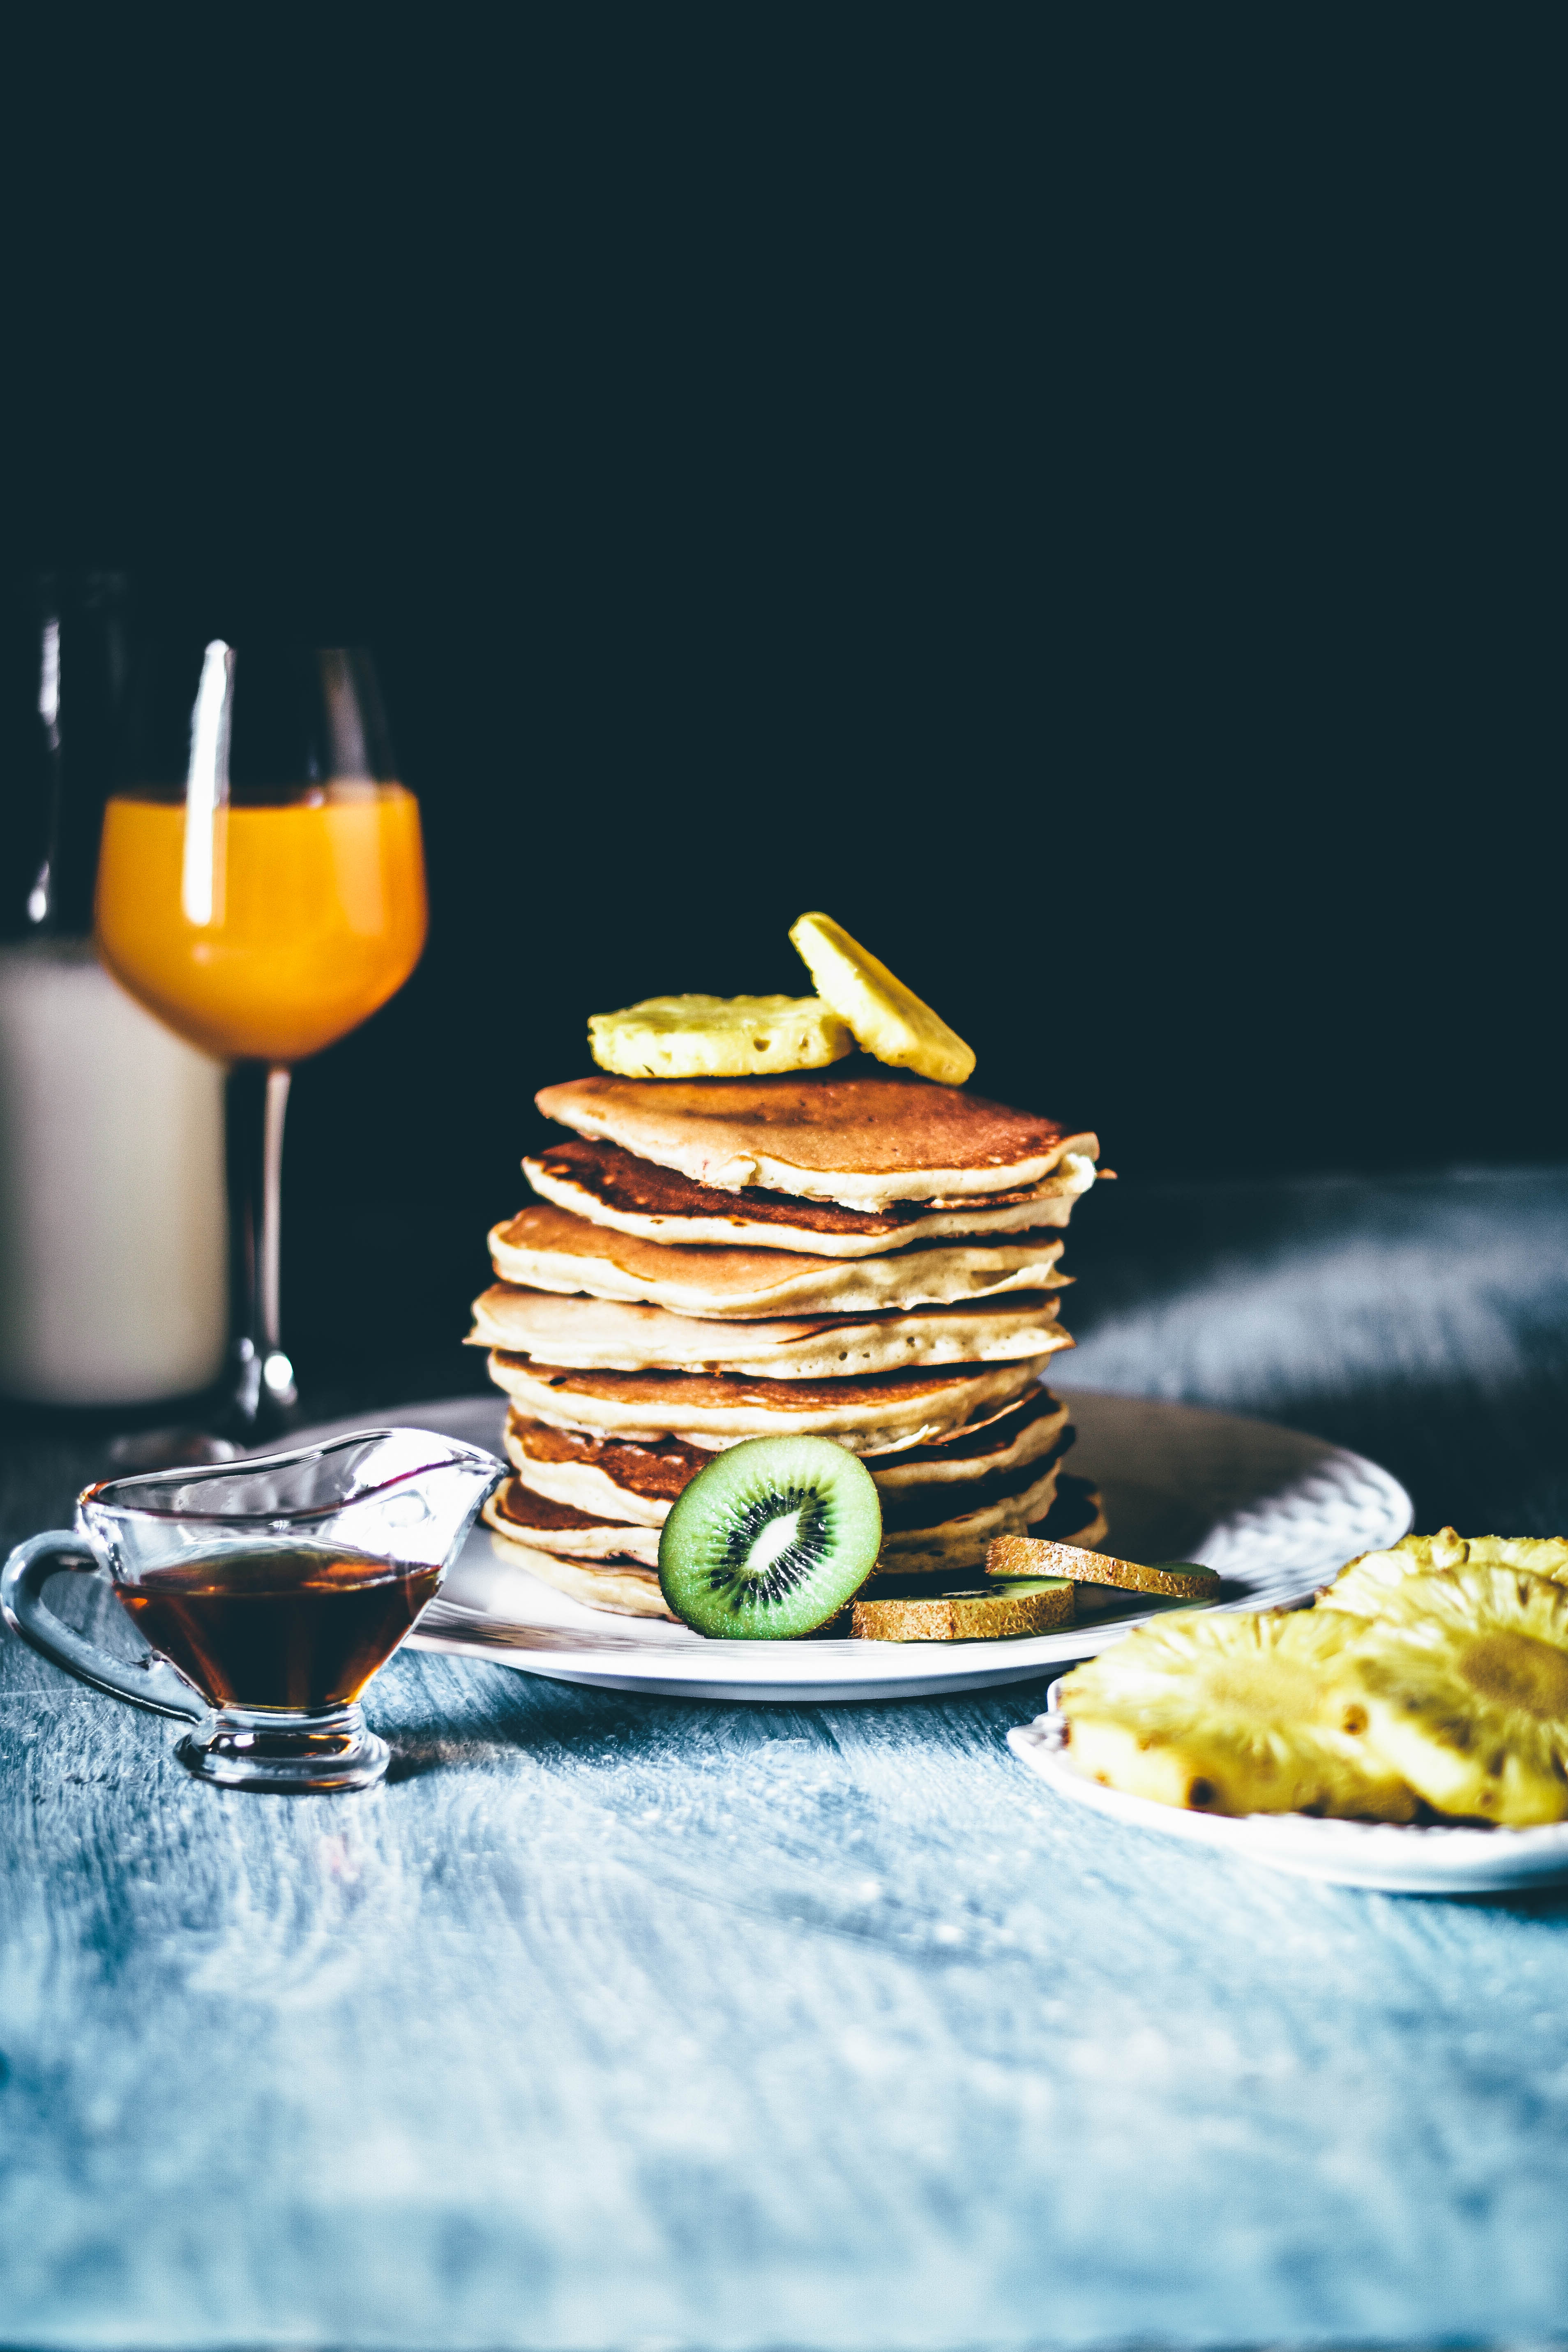 Great Lemon And Cottage Cheese Pancakes With Grilled Pineapples, Kiwi And Honey